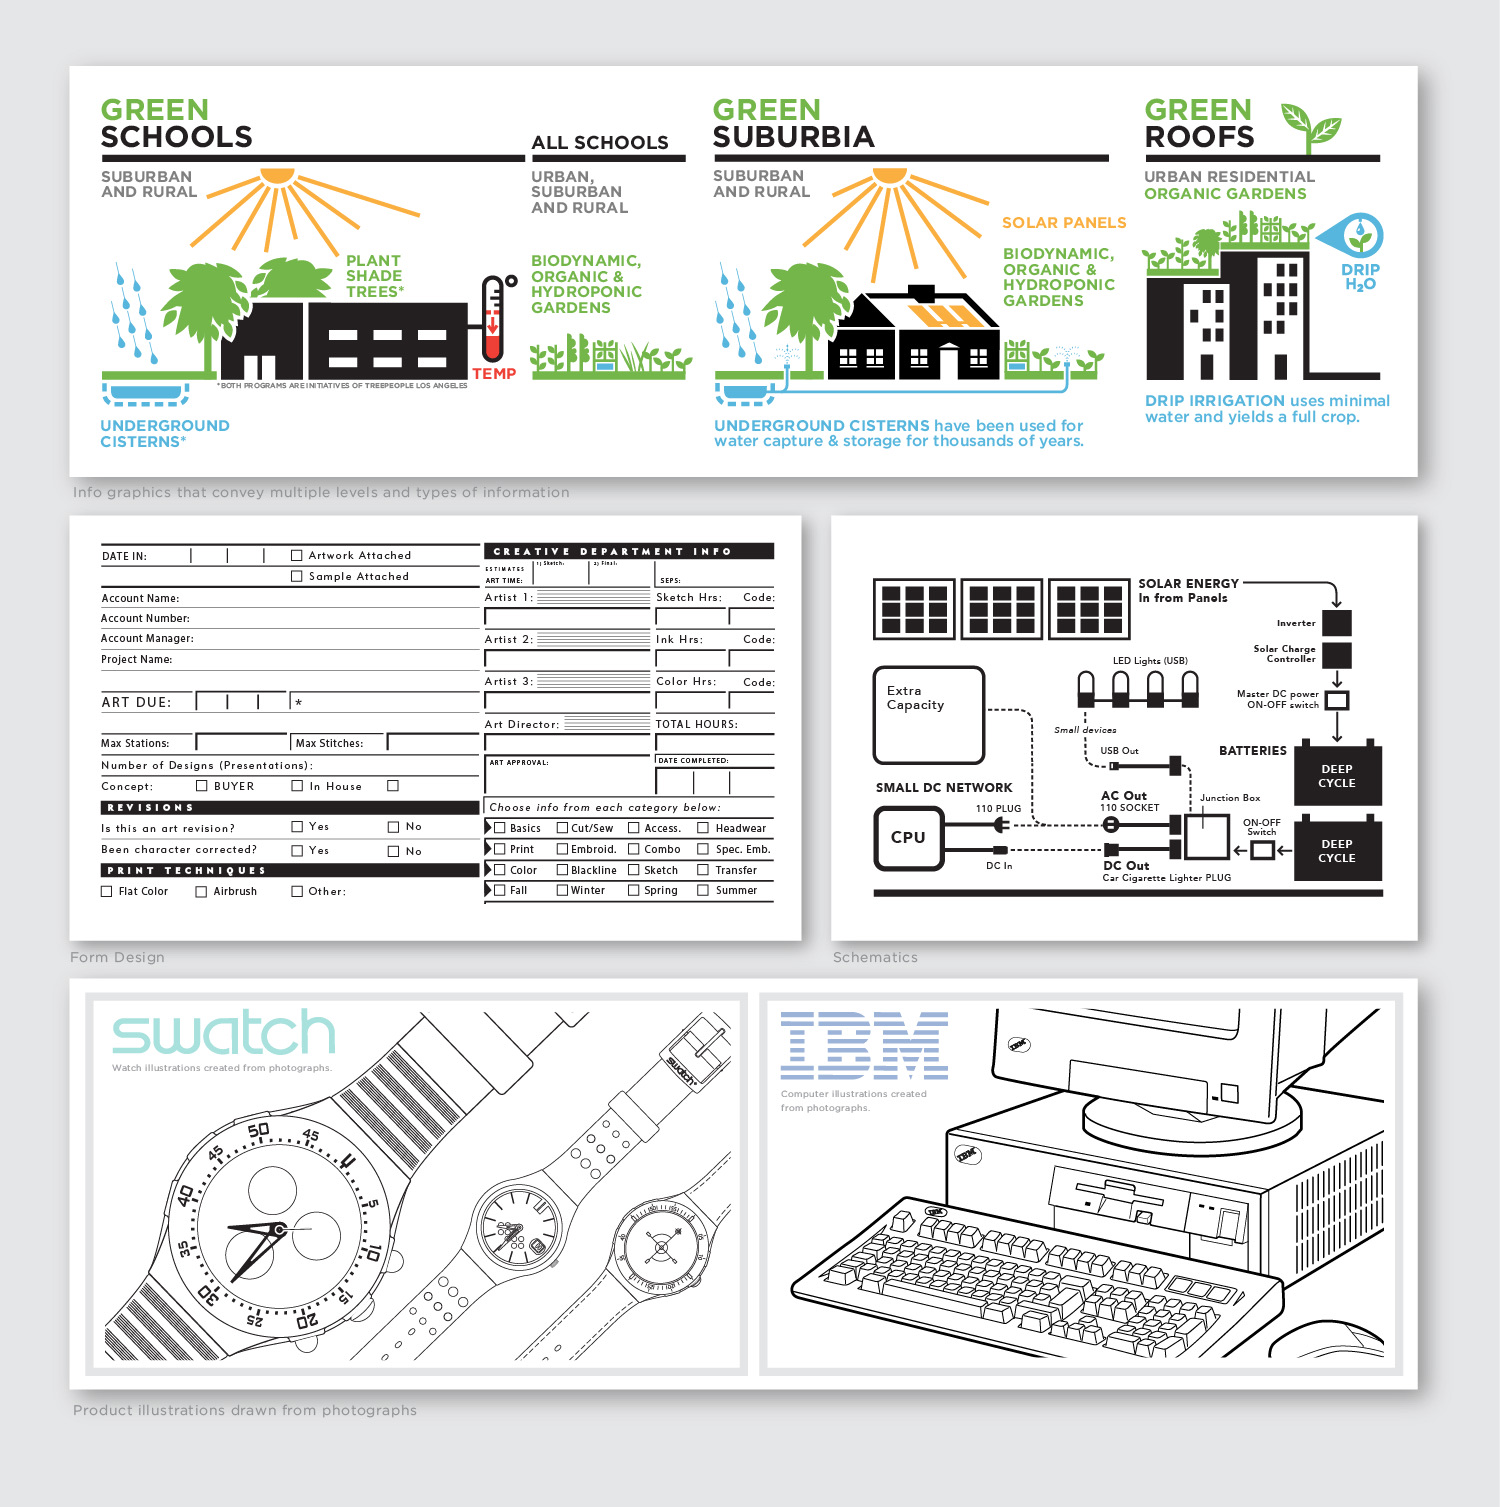 Information Design, Production Art, Schematics, Forms & Product Illustration